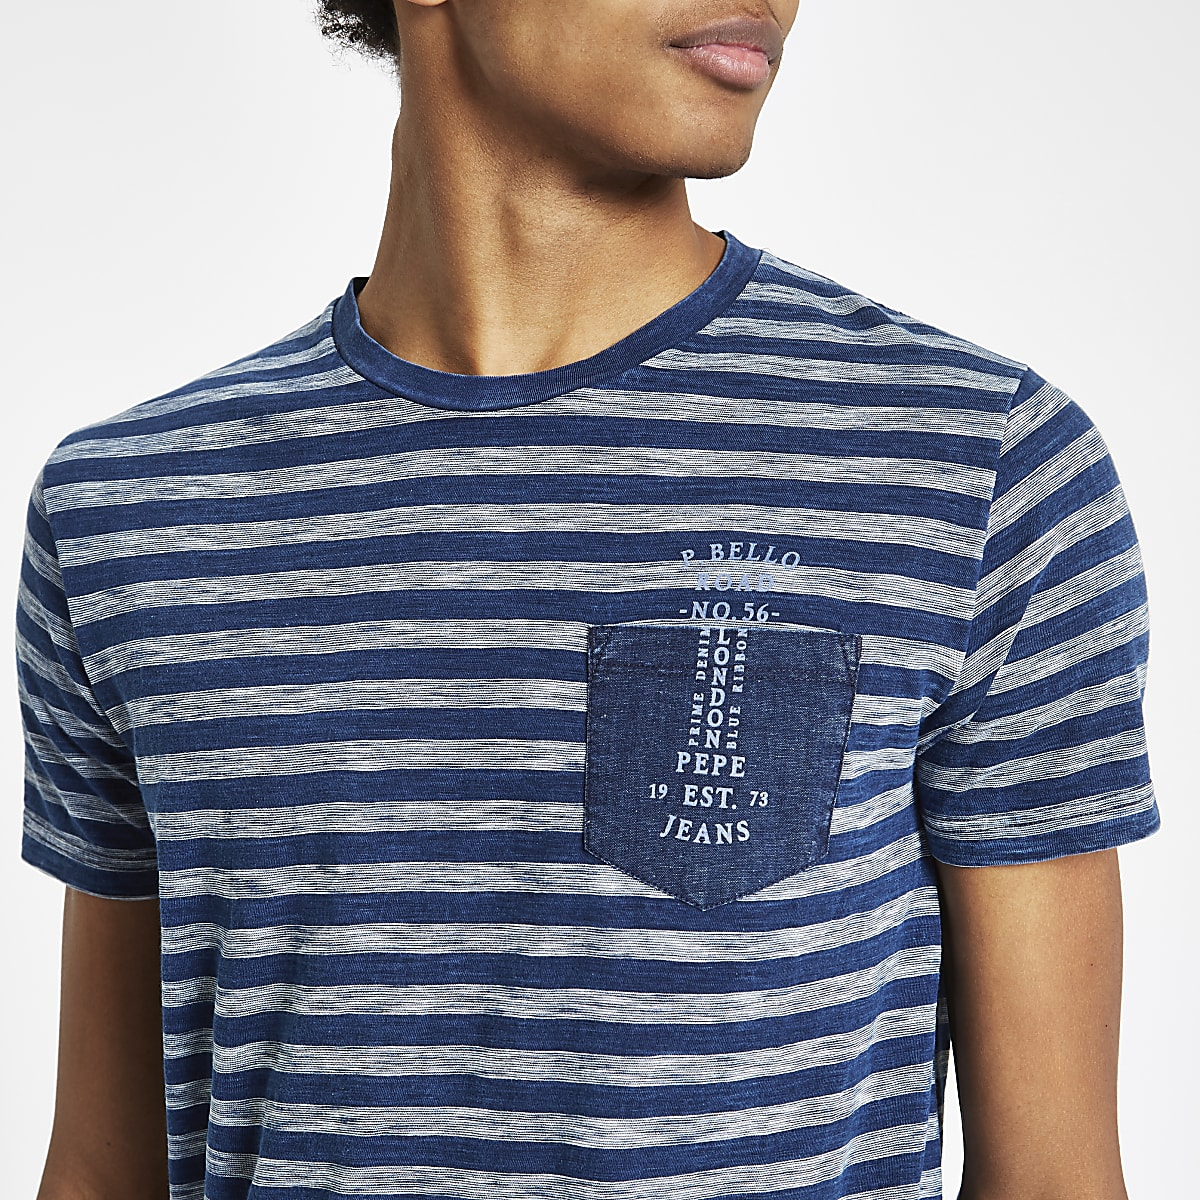 Pepe Jeans blue stripe T-shirt